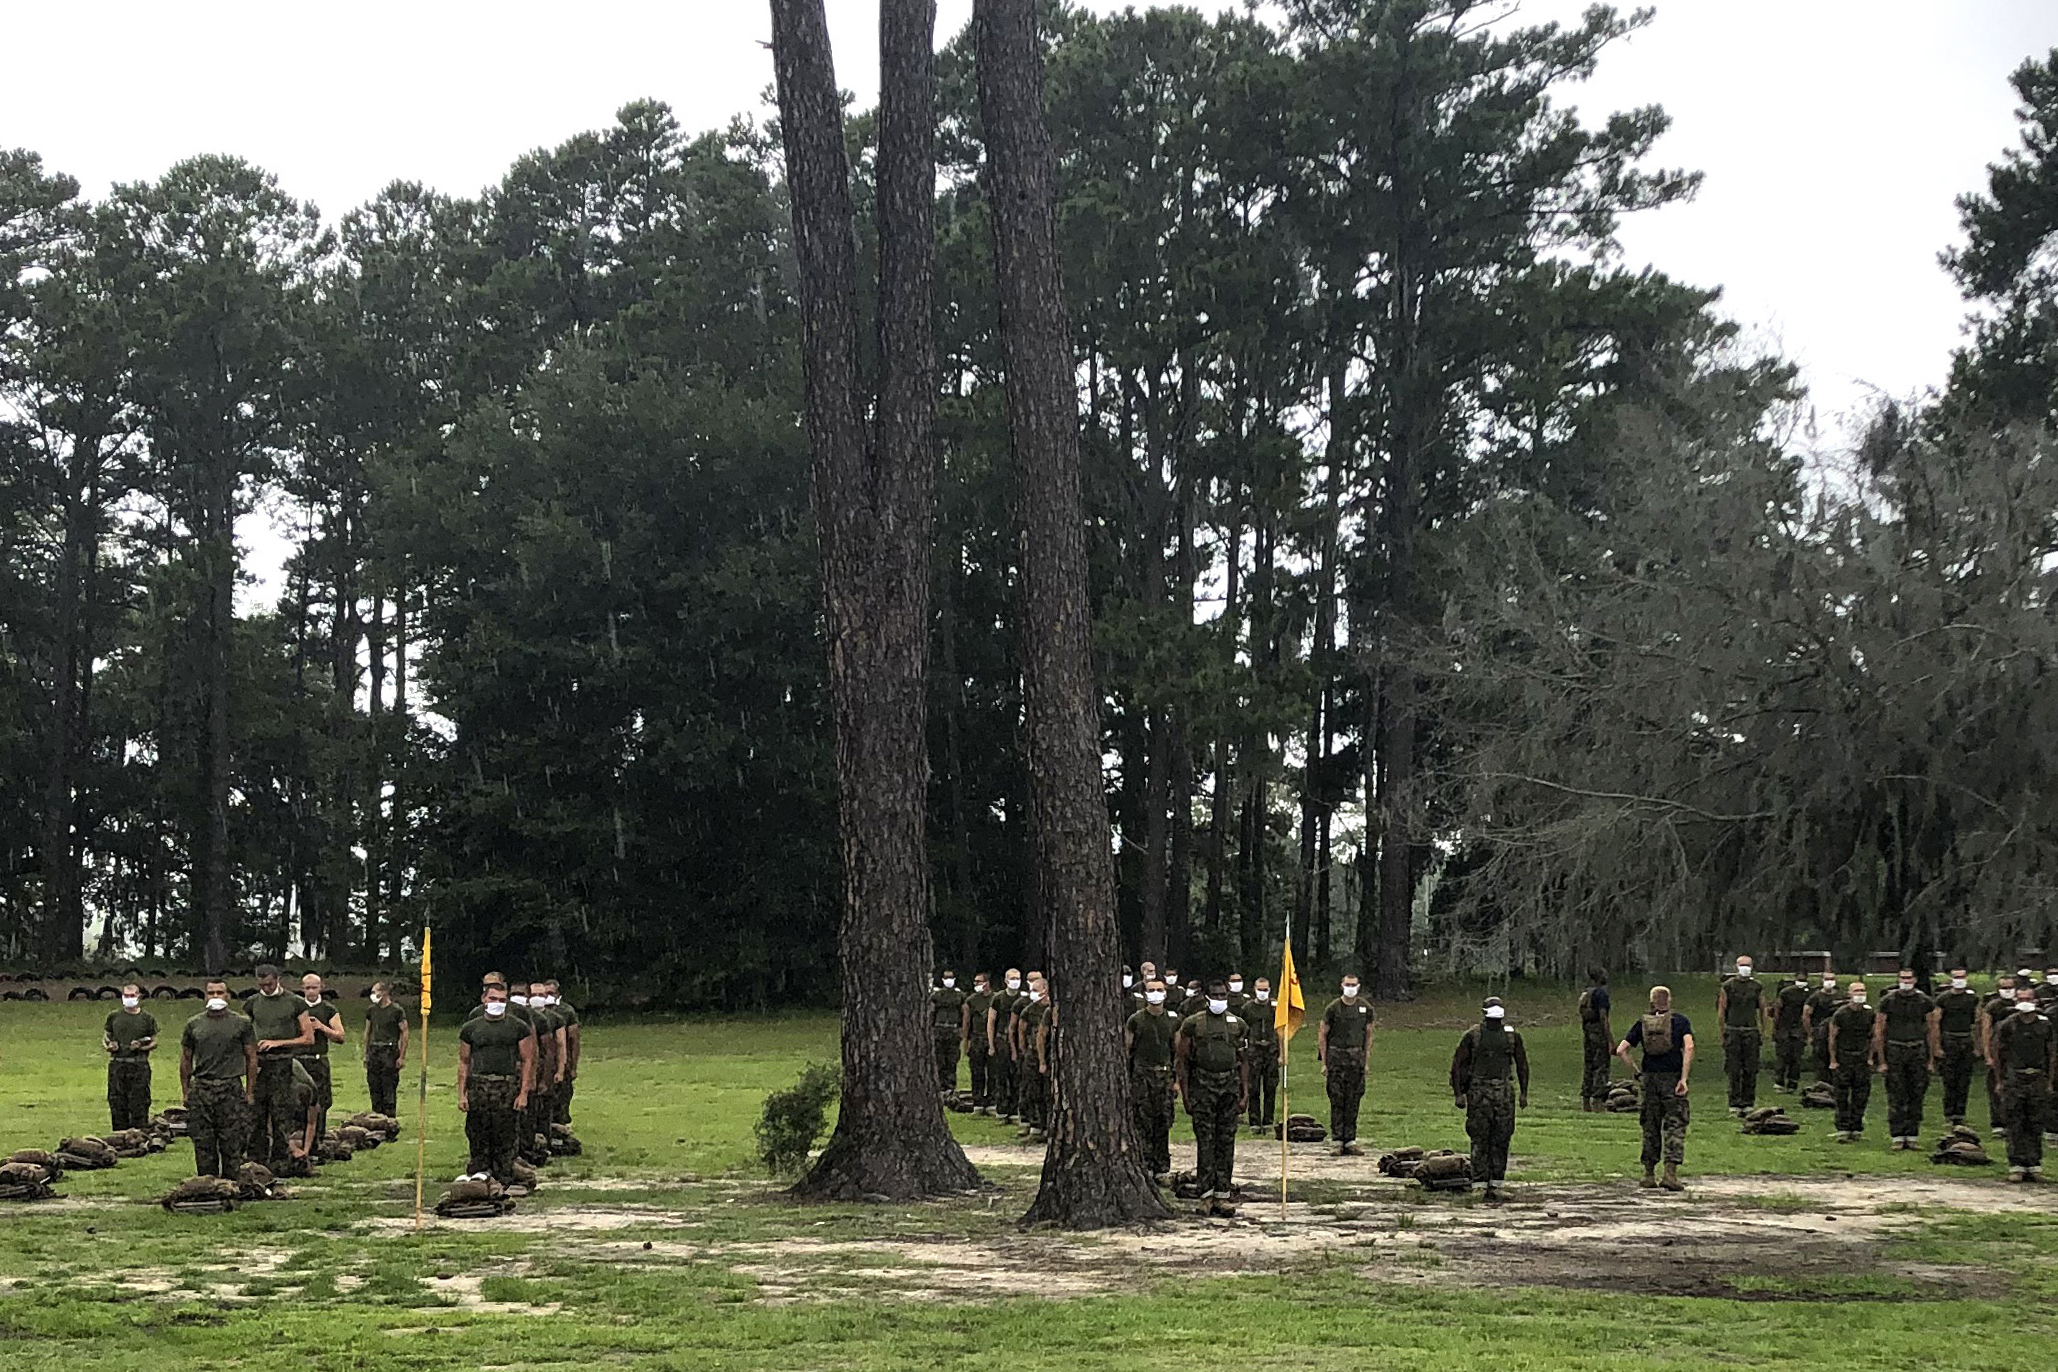 In this May 27, 2020, photo, Marine recruits line up at Parris Island Recruit Depot, S.C. A study published on Nov. 11, 2020, found that despite temperature and COVID-19 symptom checks and strict quarantines before they were allowed to start training, new Marine recruits spread the virus to others even though hardly any of them had symptoms. None of the infections that occurred were caught through symptom screening. (Lolita Baldor / Associated Press)